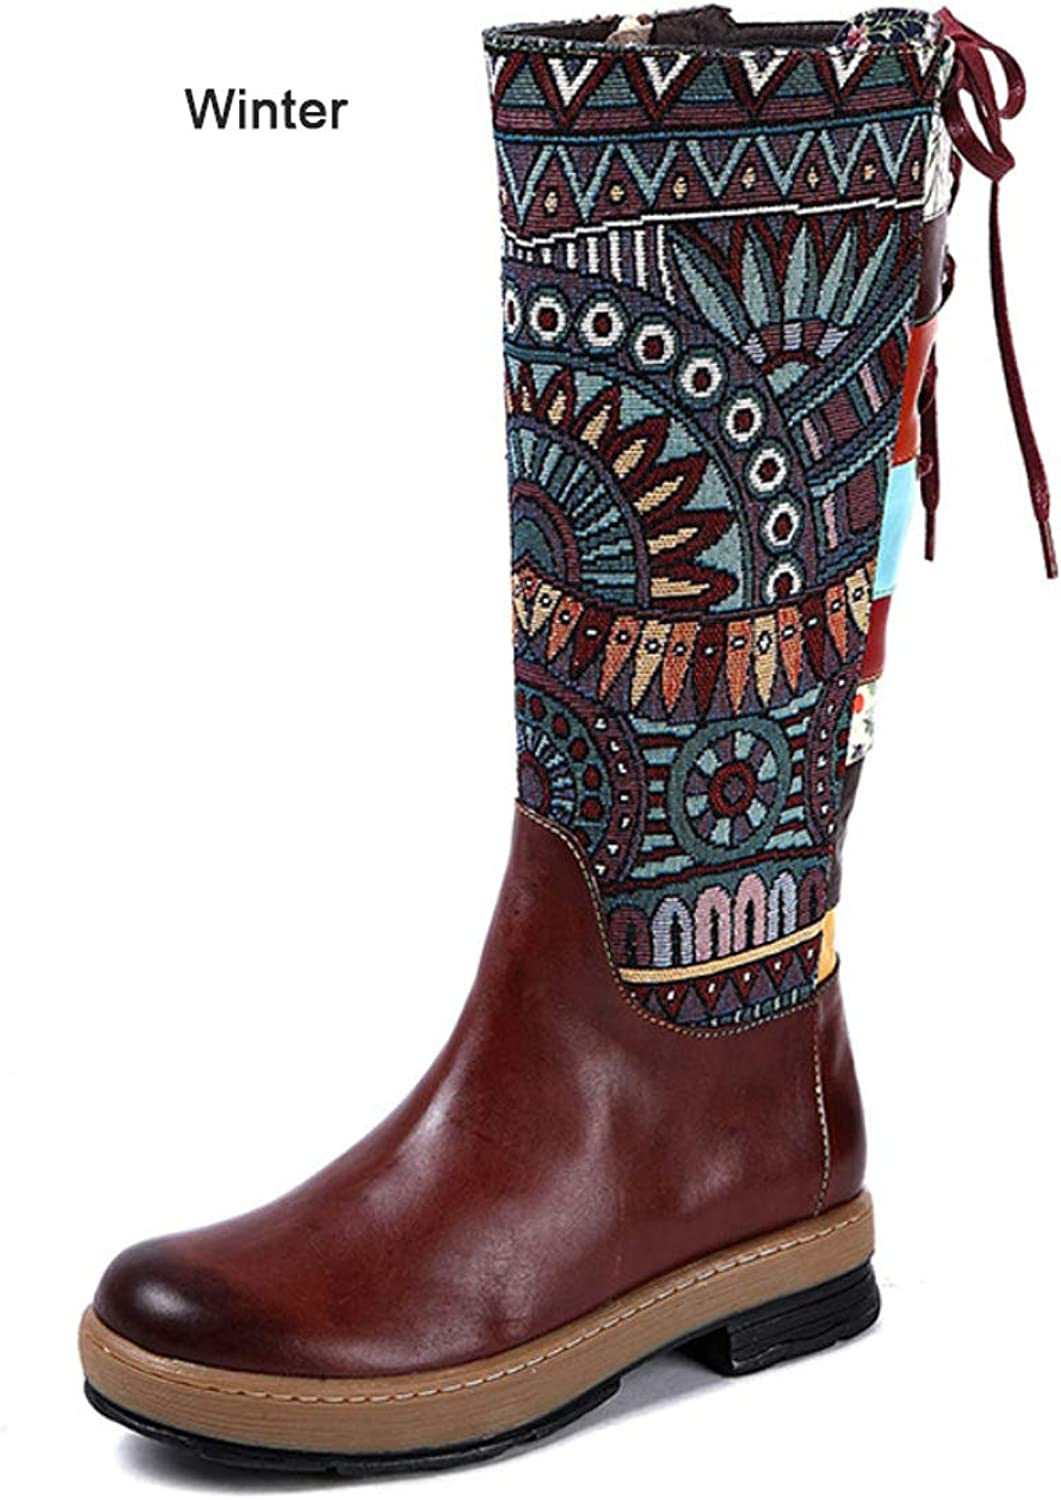 Womens Knee High Boots Vintage Ethnic Style Comfort Boots Lace-up Zipper Flat Heel shoes Fall & Winter